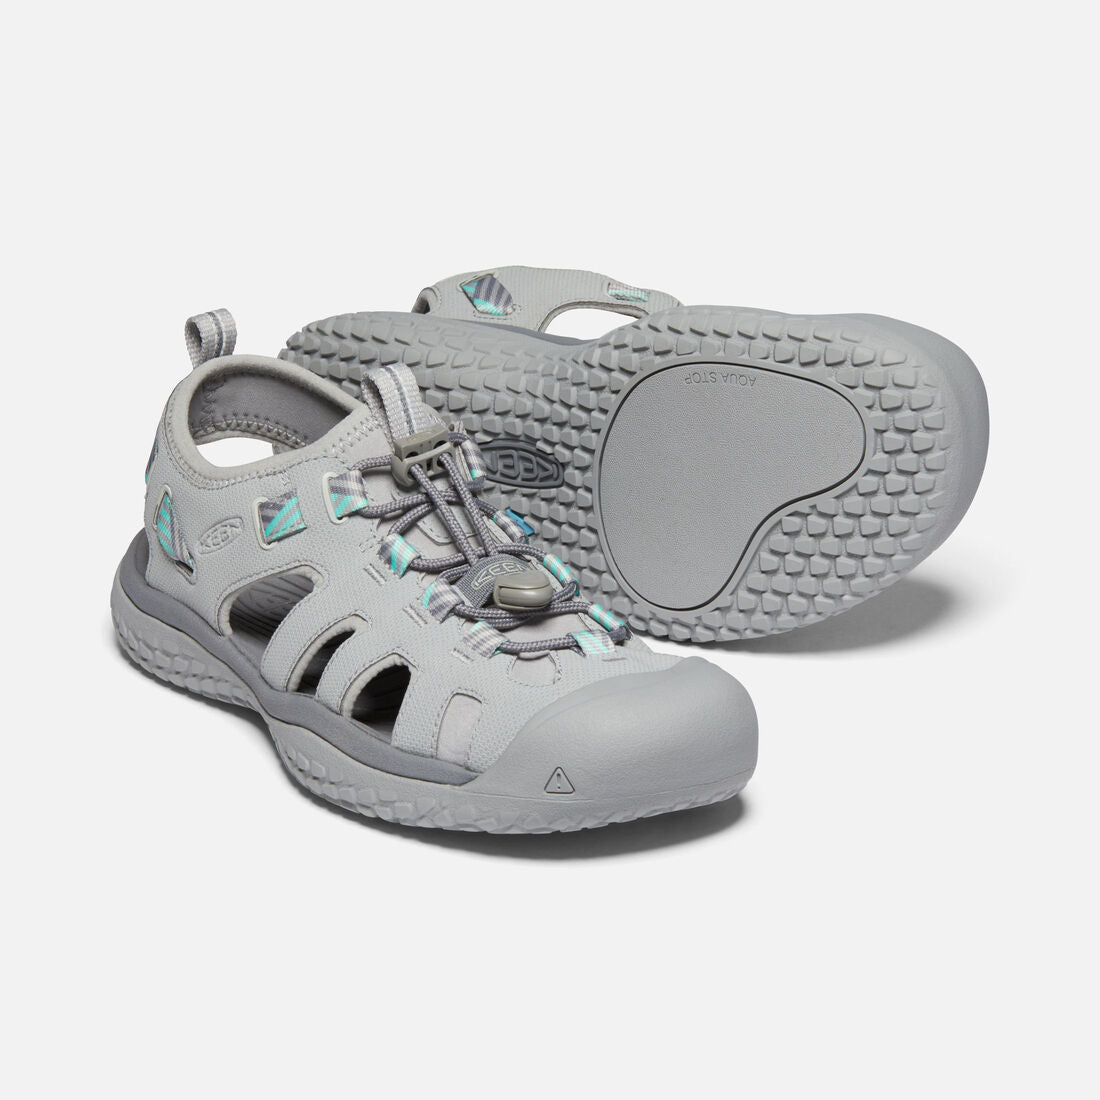 KEEN - LADIES SOLR SANDAL